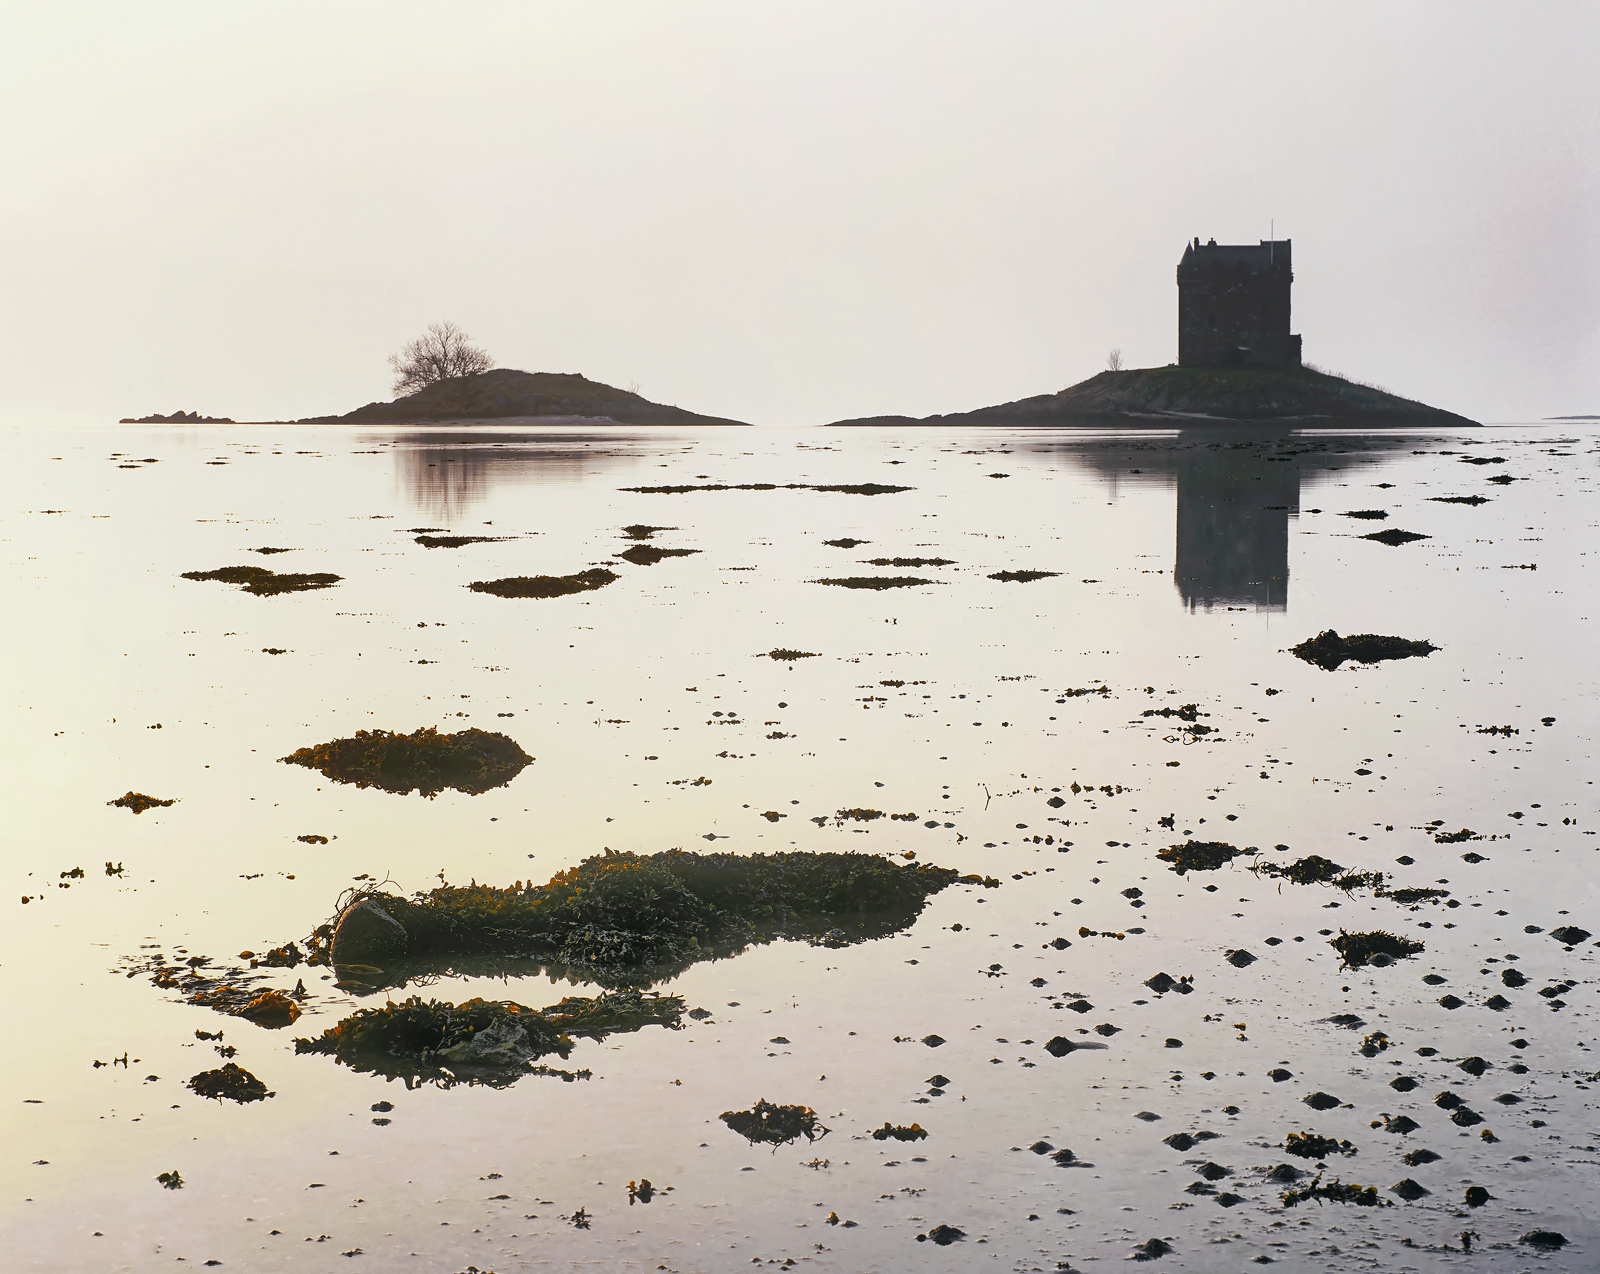 The champagne colours of a misty autumnal sunset swirl around the Castle Stalker on its island plinth.  Yet it was so still...